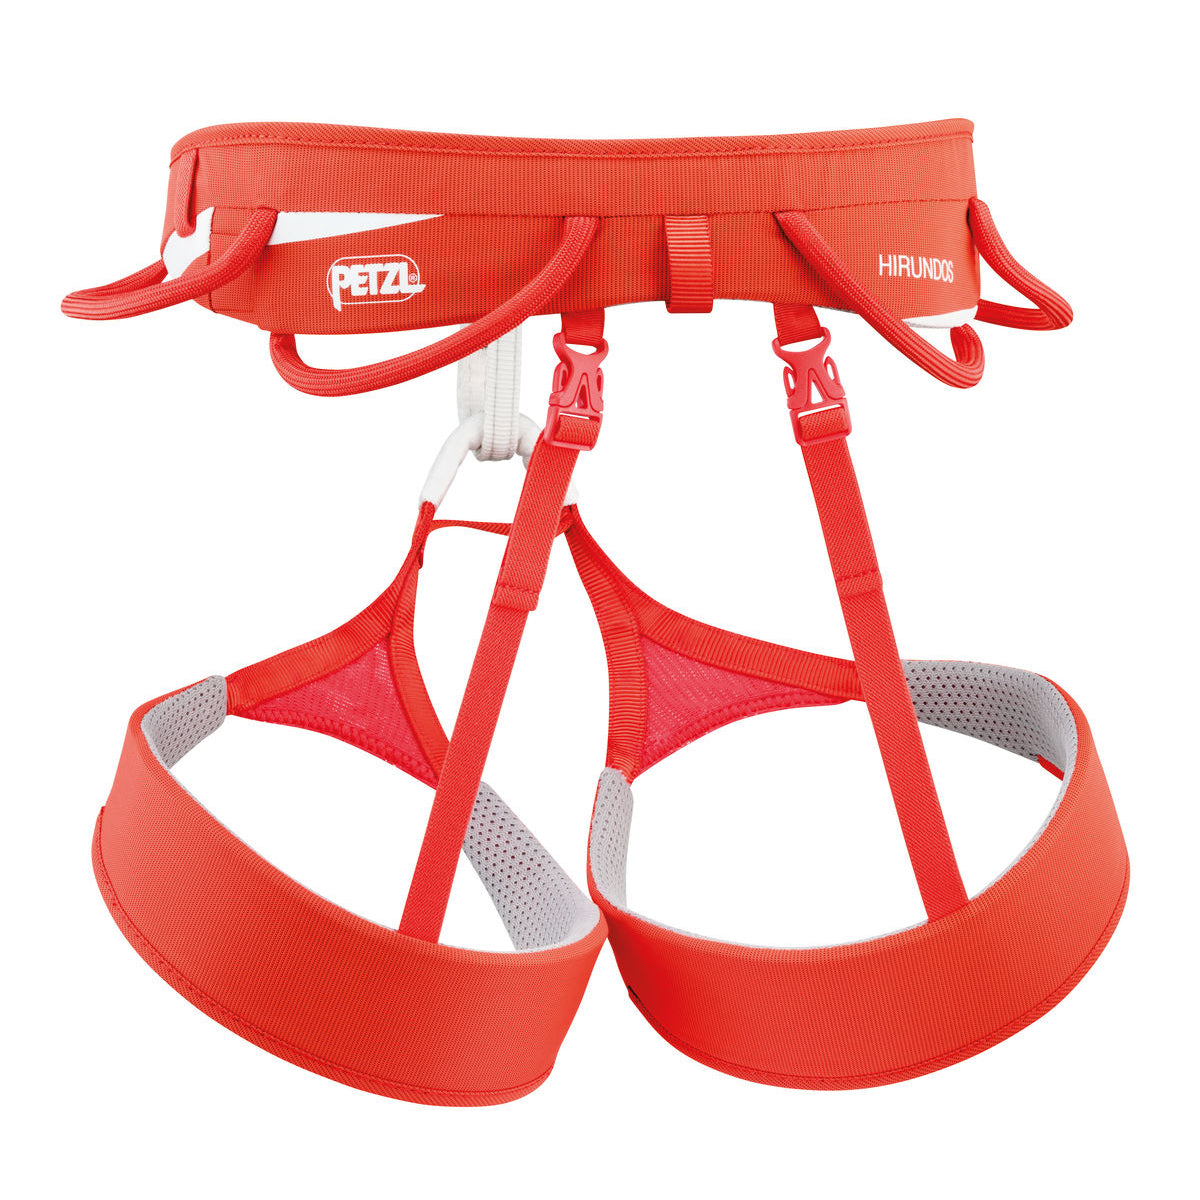 Petzl Hirundos Harness, rear view